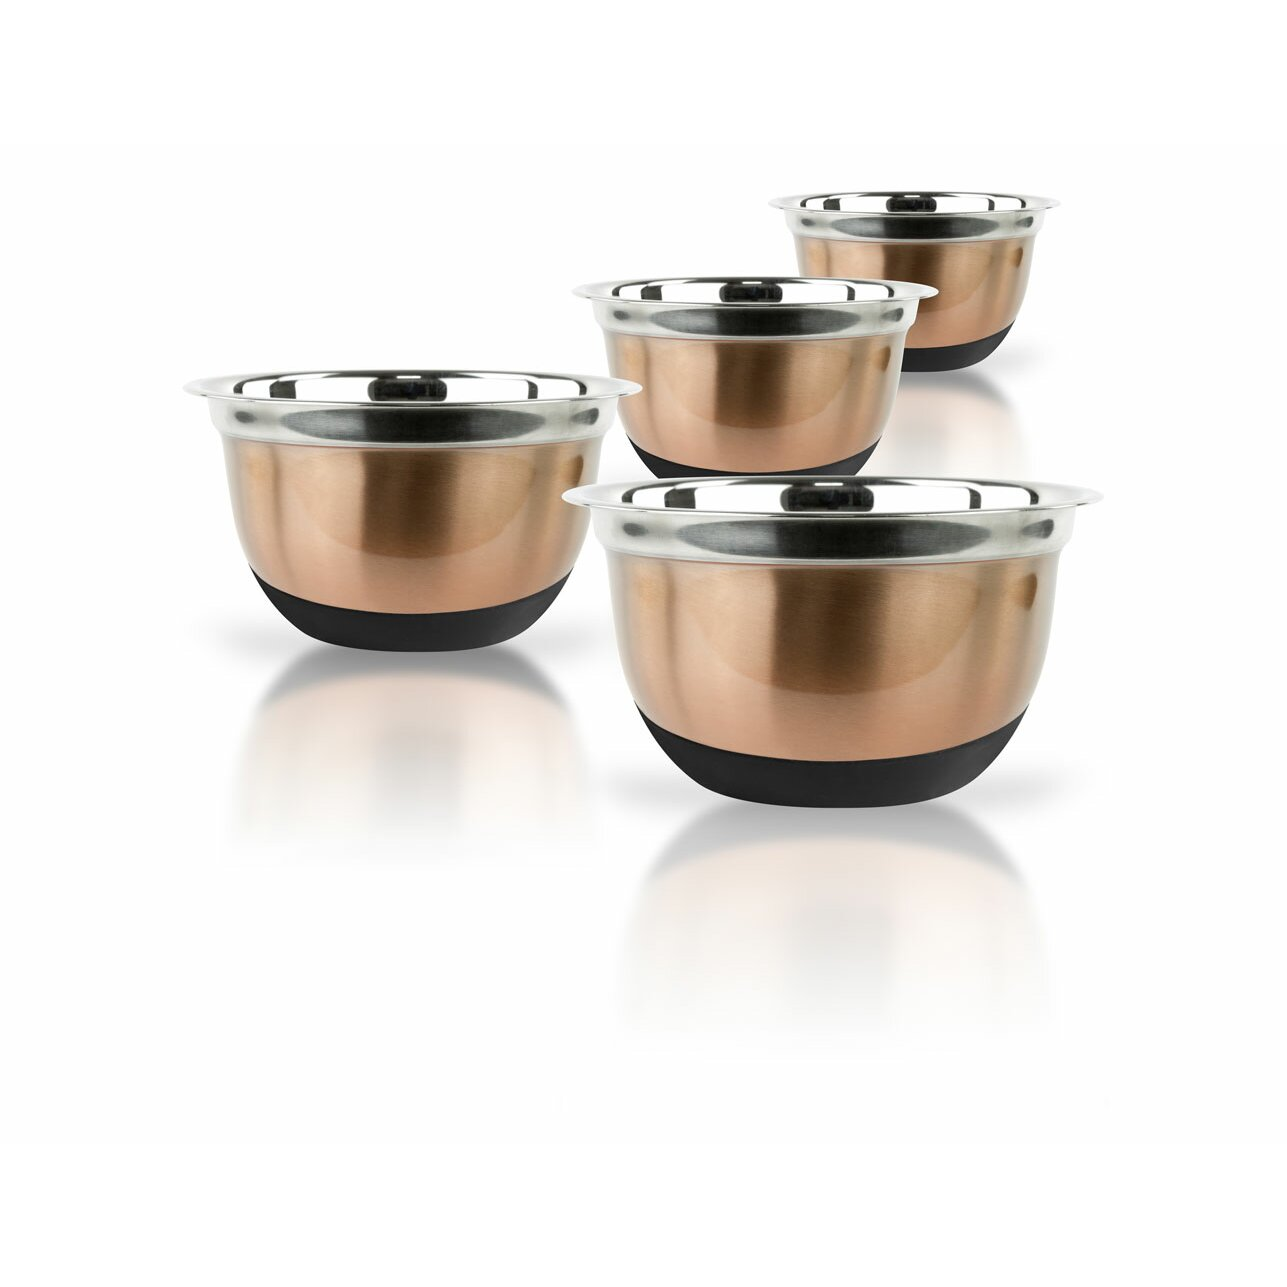 4 Piece Kitchen Appliance Set Imperial Home 4 Piece Stainless Steel Mixing Bowls Set Reviews